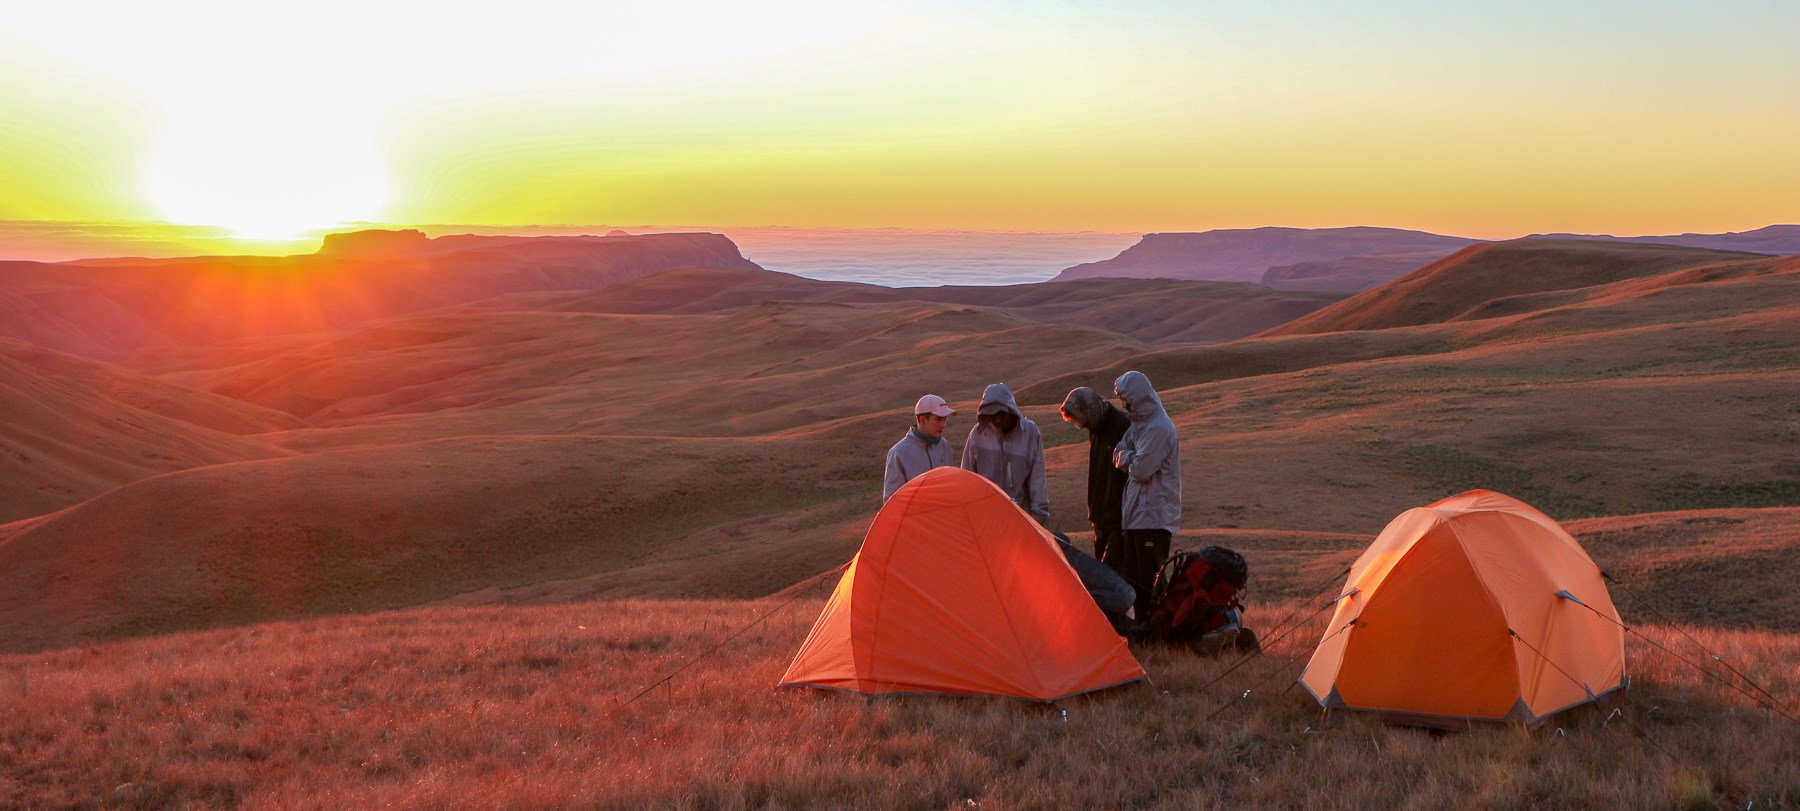 21 Essential Hiking Tips for the Drakensberg Mountains